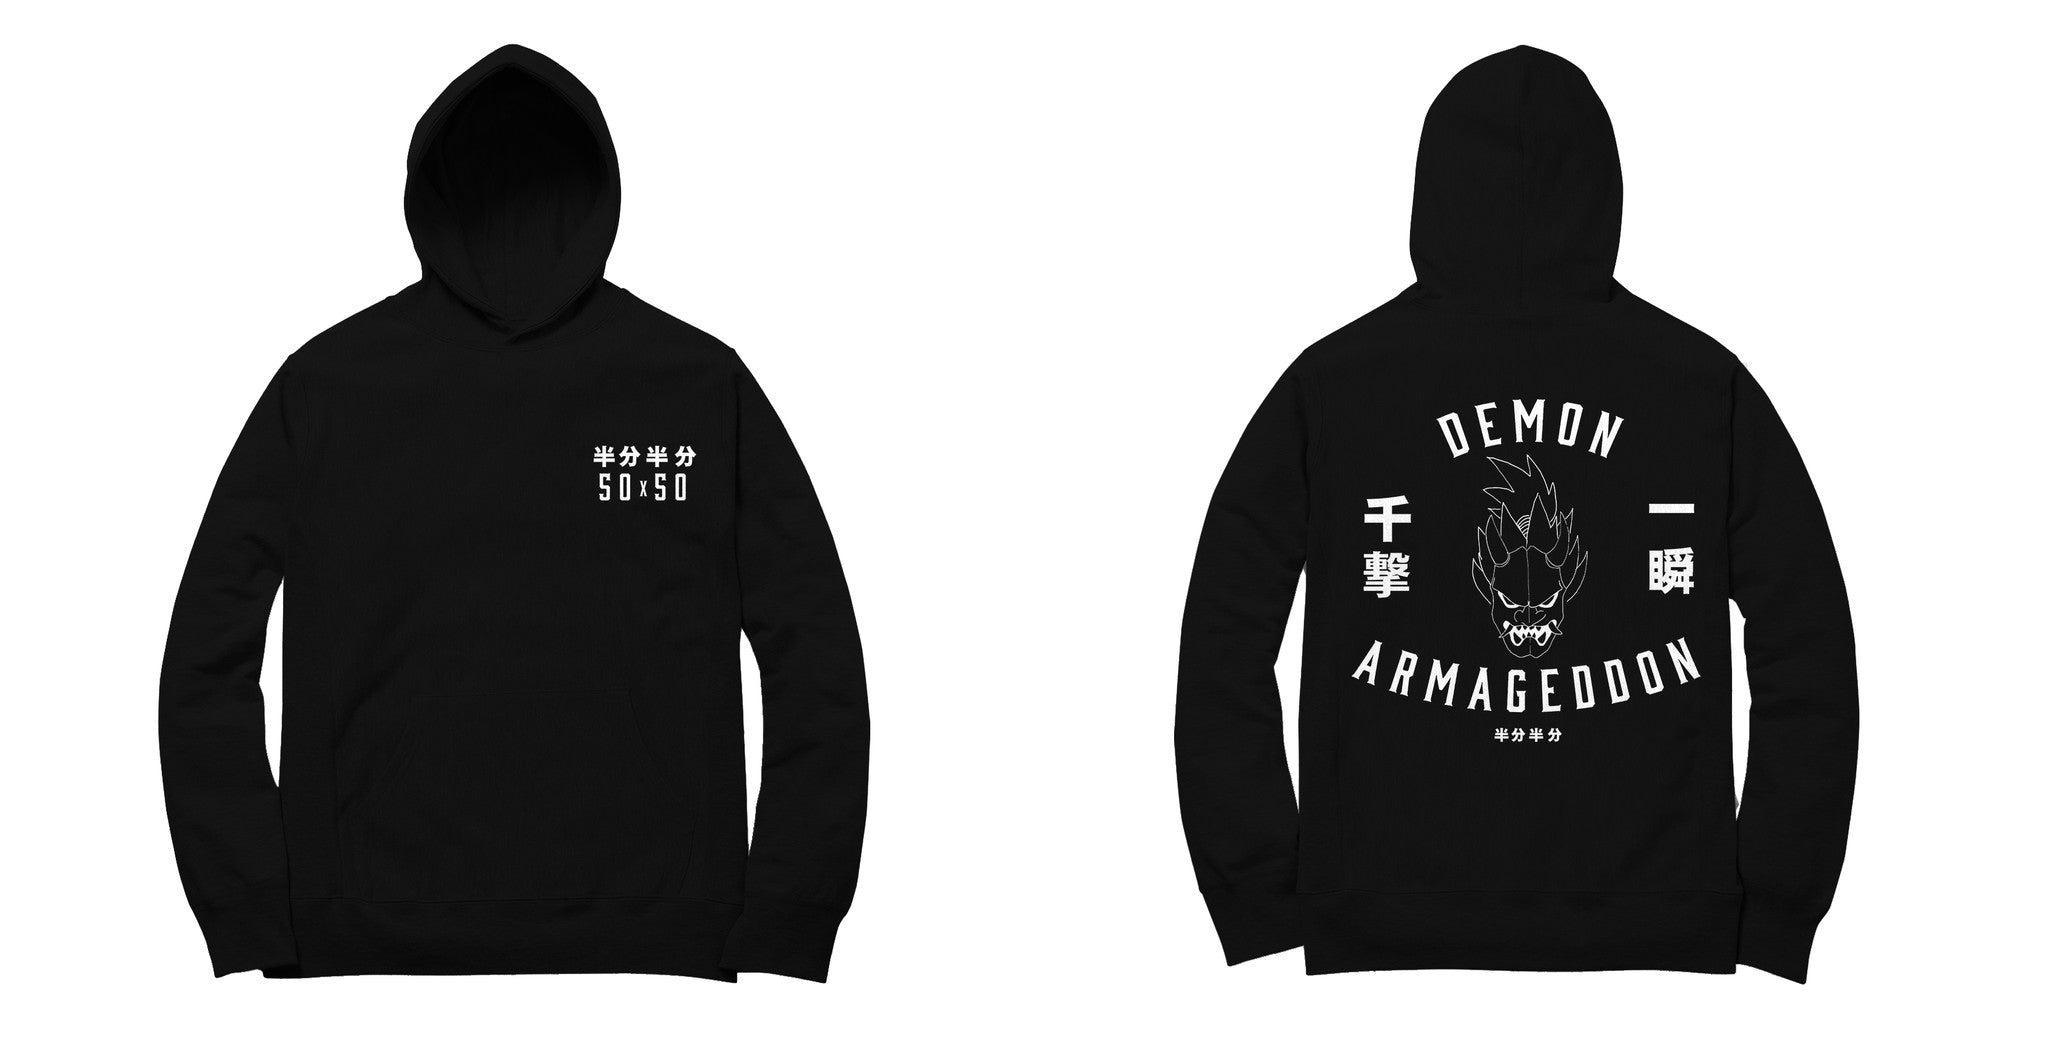 Demon Armageddon Fleece Pullover in Black